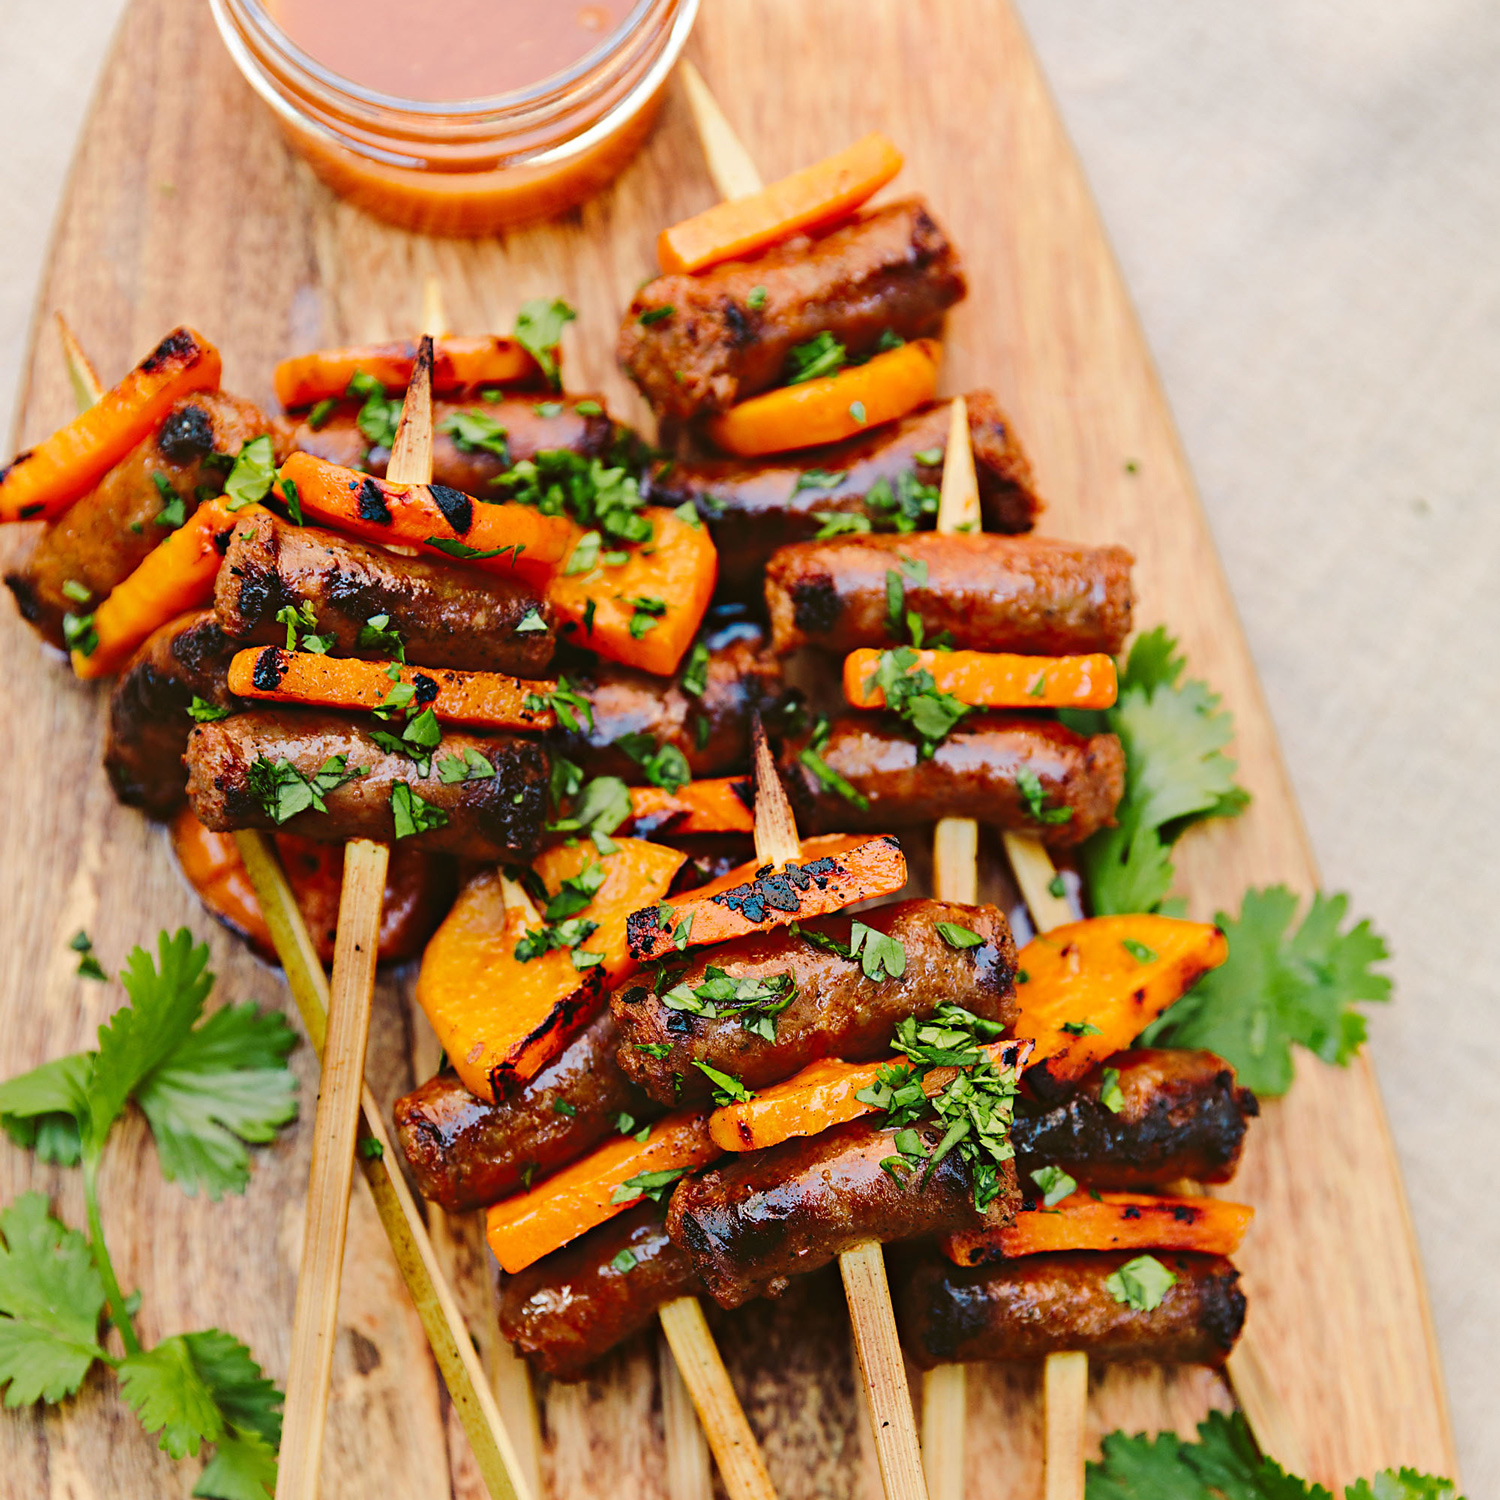 Stephanie Izard's Breakfast Sausage Skewers with Spiced Maple Drizzle